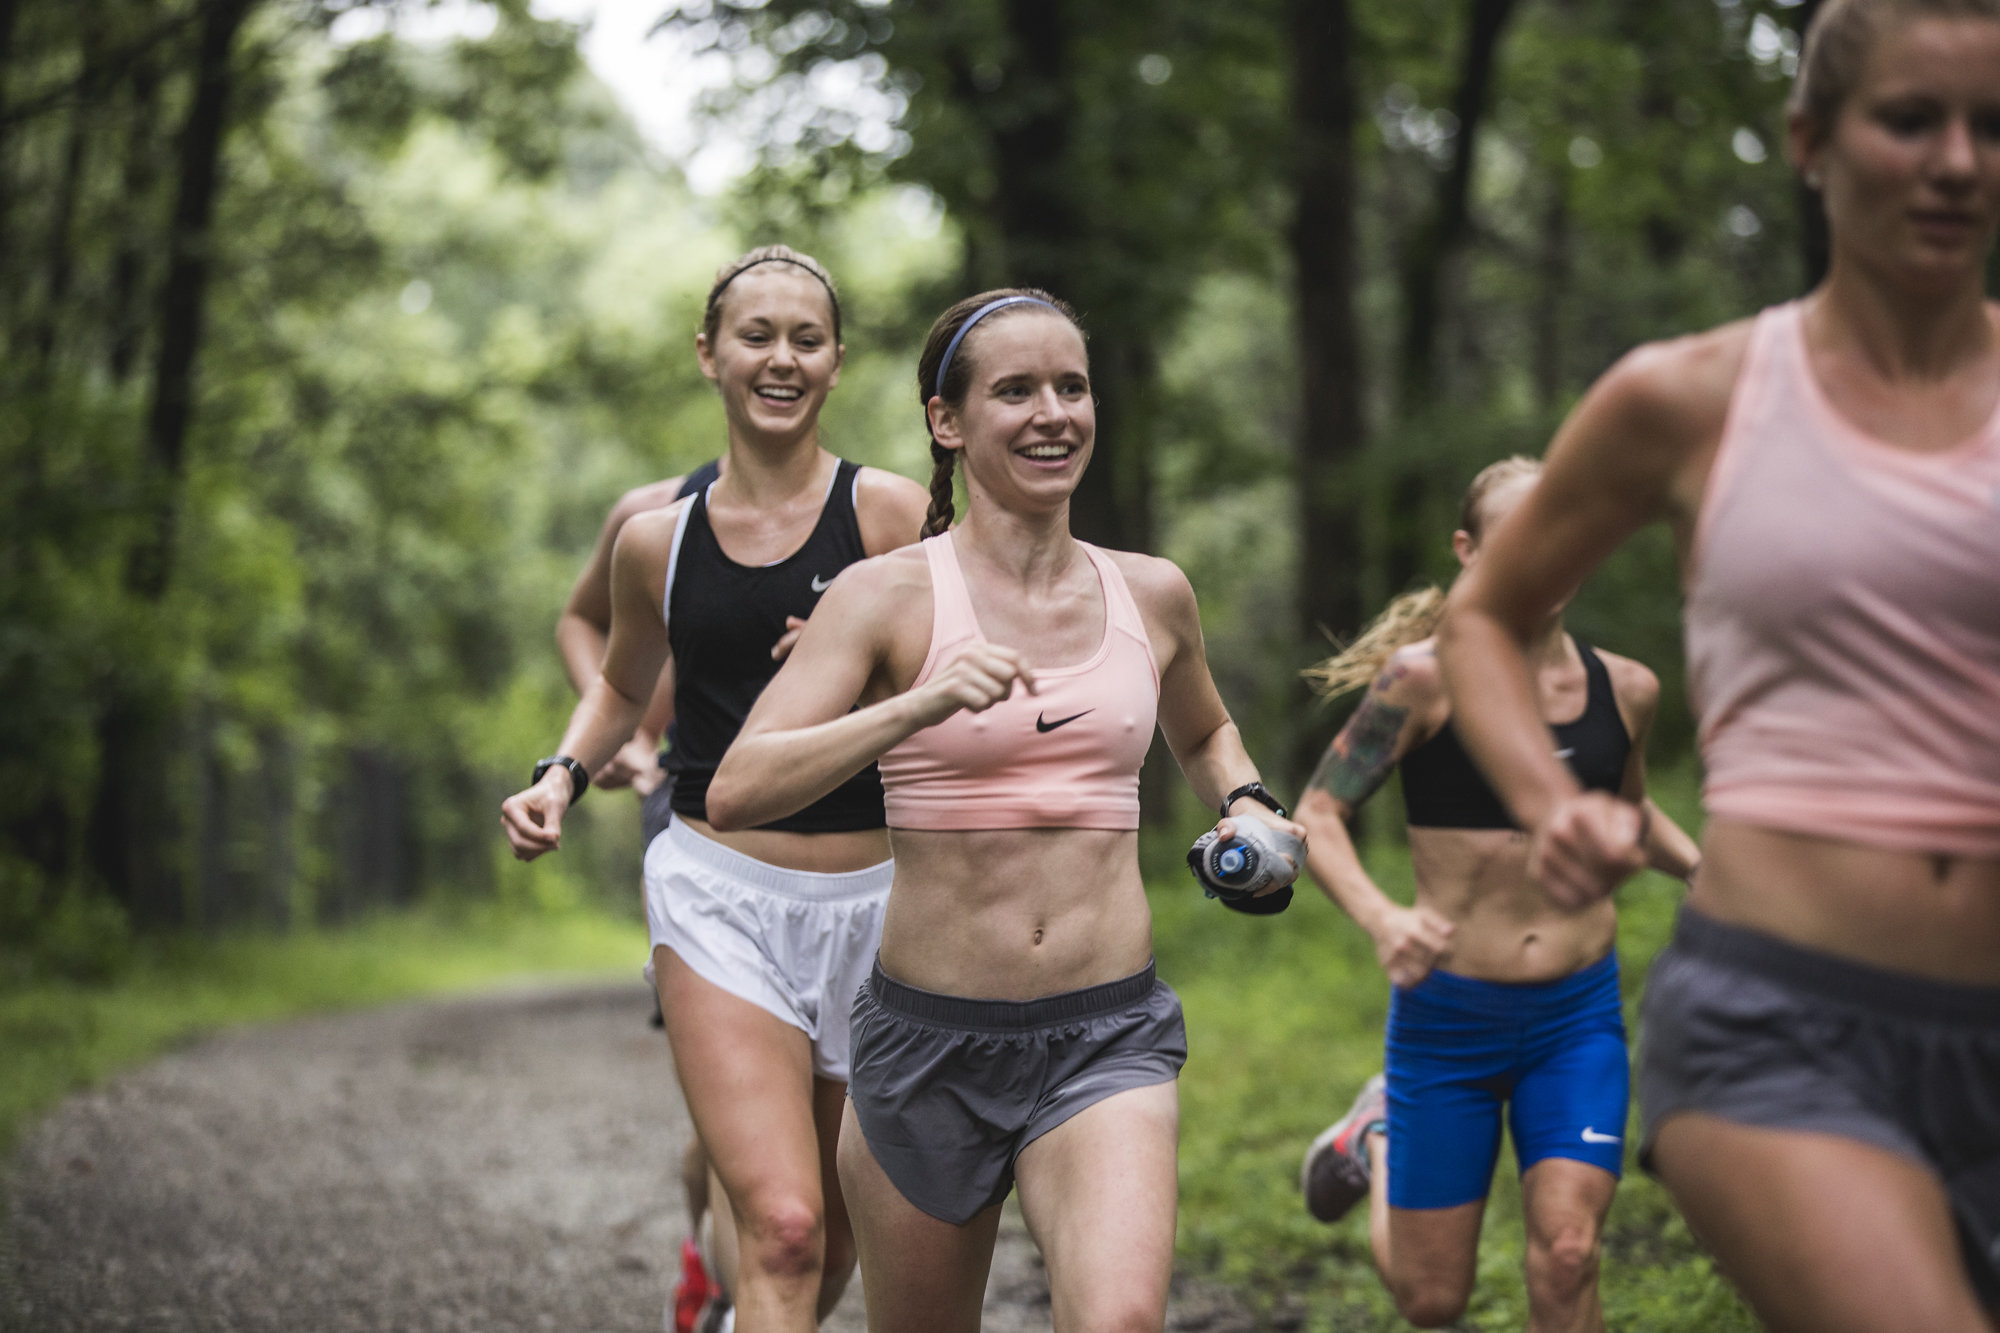 Who is Lydia? - The athlete's dietitian. When I'm not busy at work, you can find me running around Chicago and on trails with my teammates. An athlete myself, I understand the demands of your sport and life.